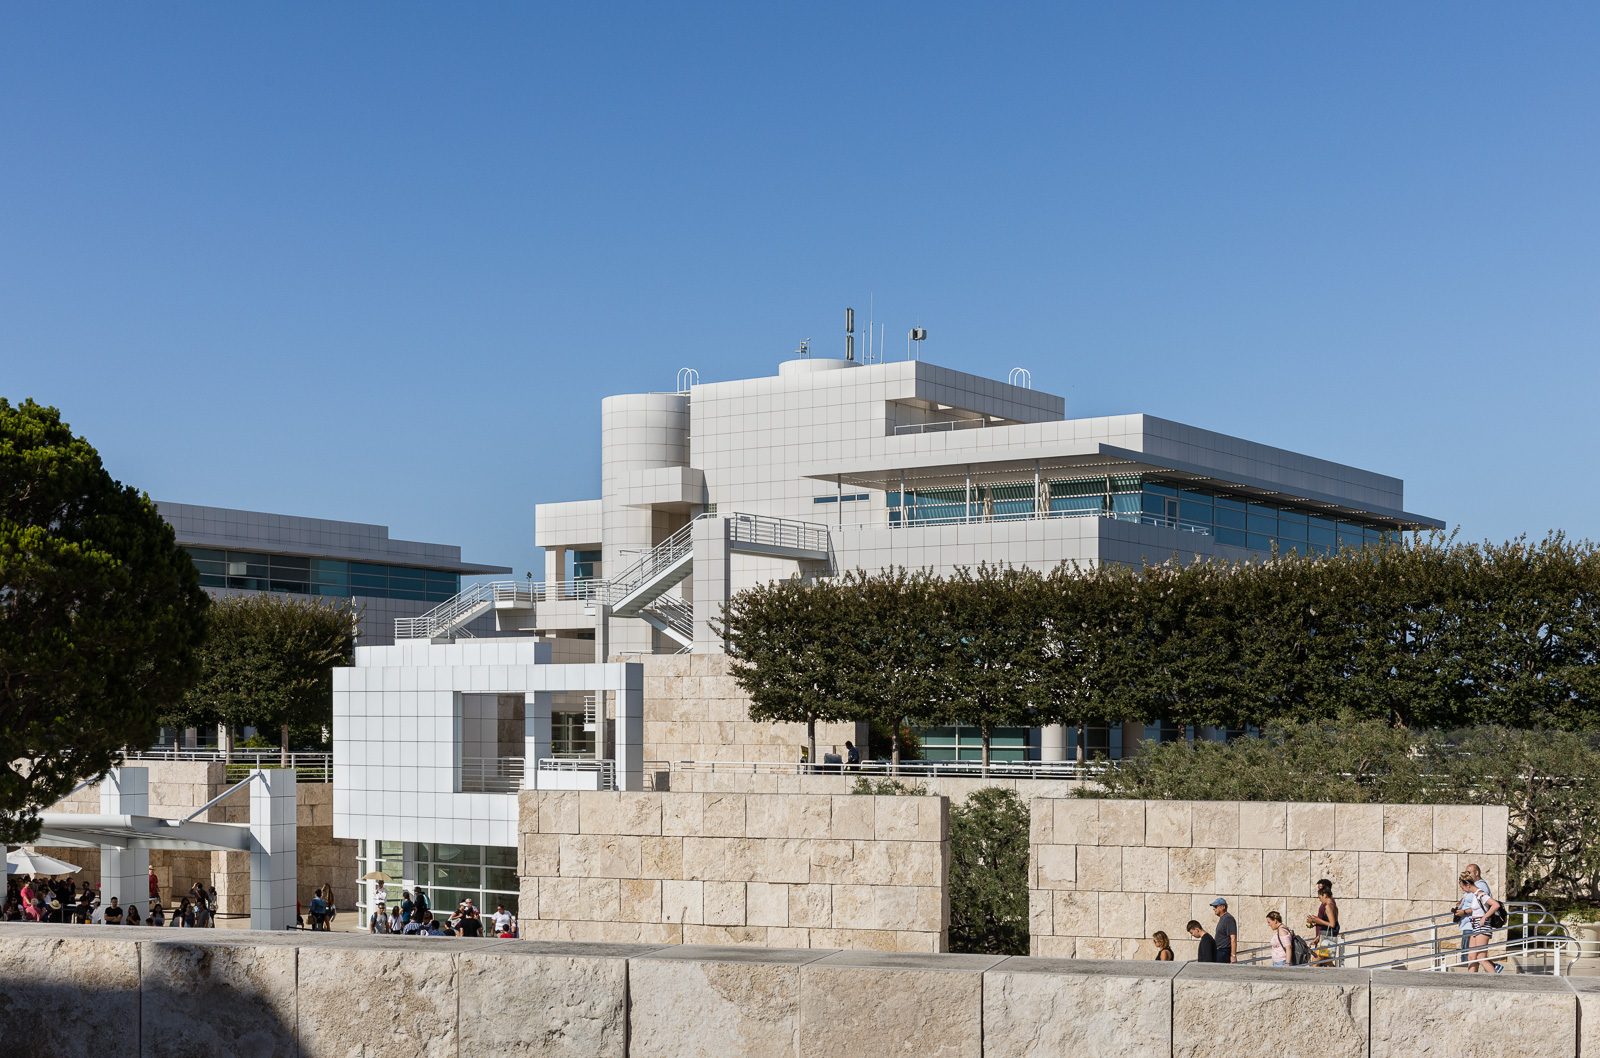 Design elements of the Getty Center designed by Richard Meier